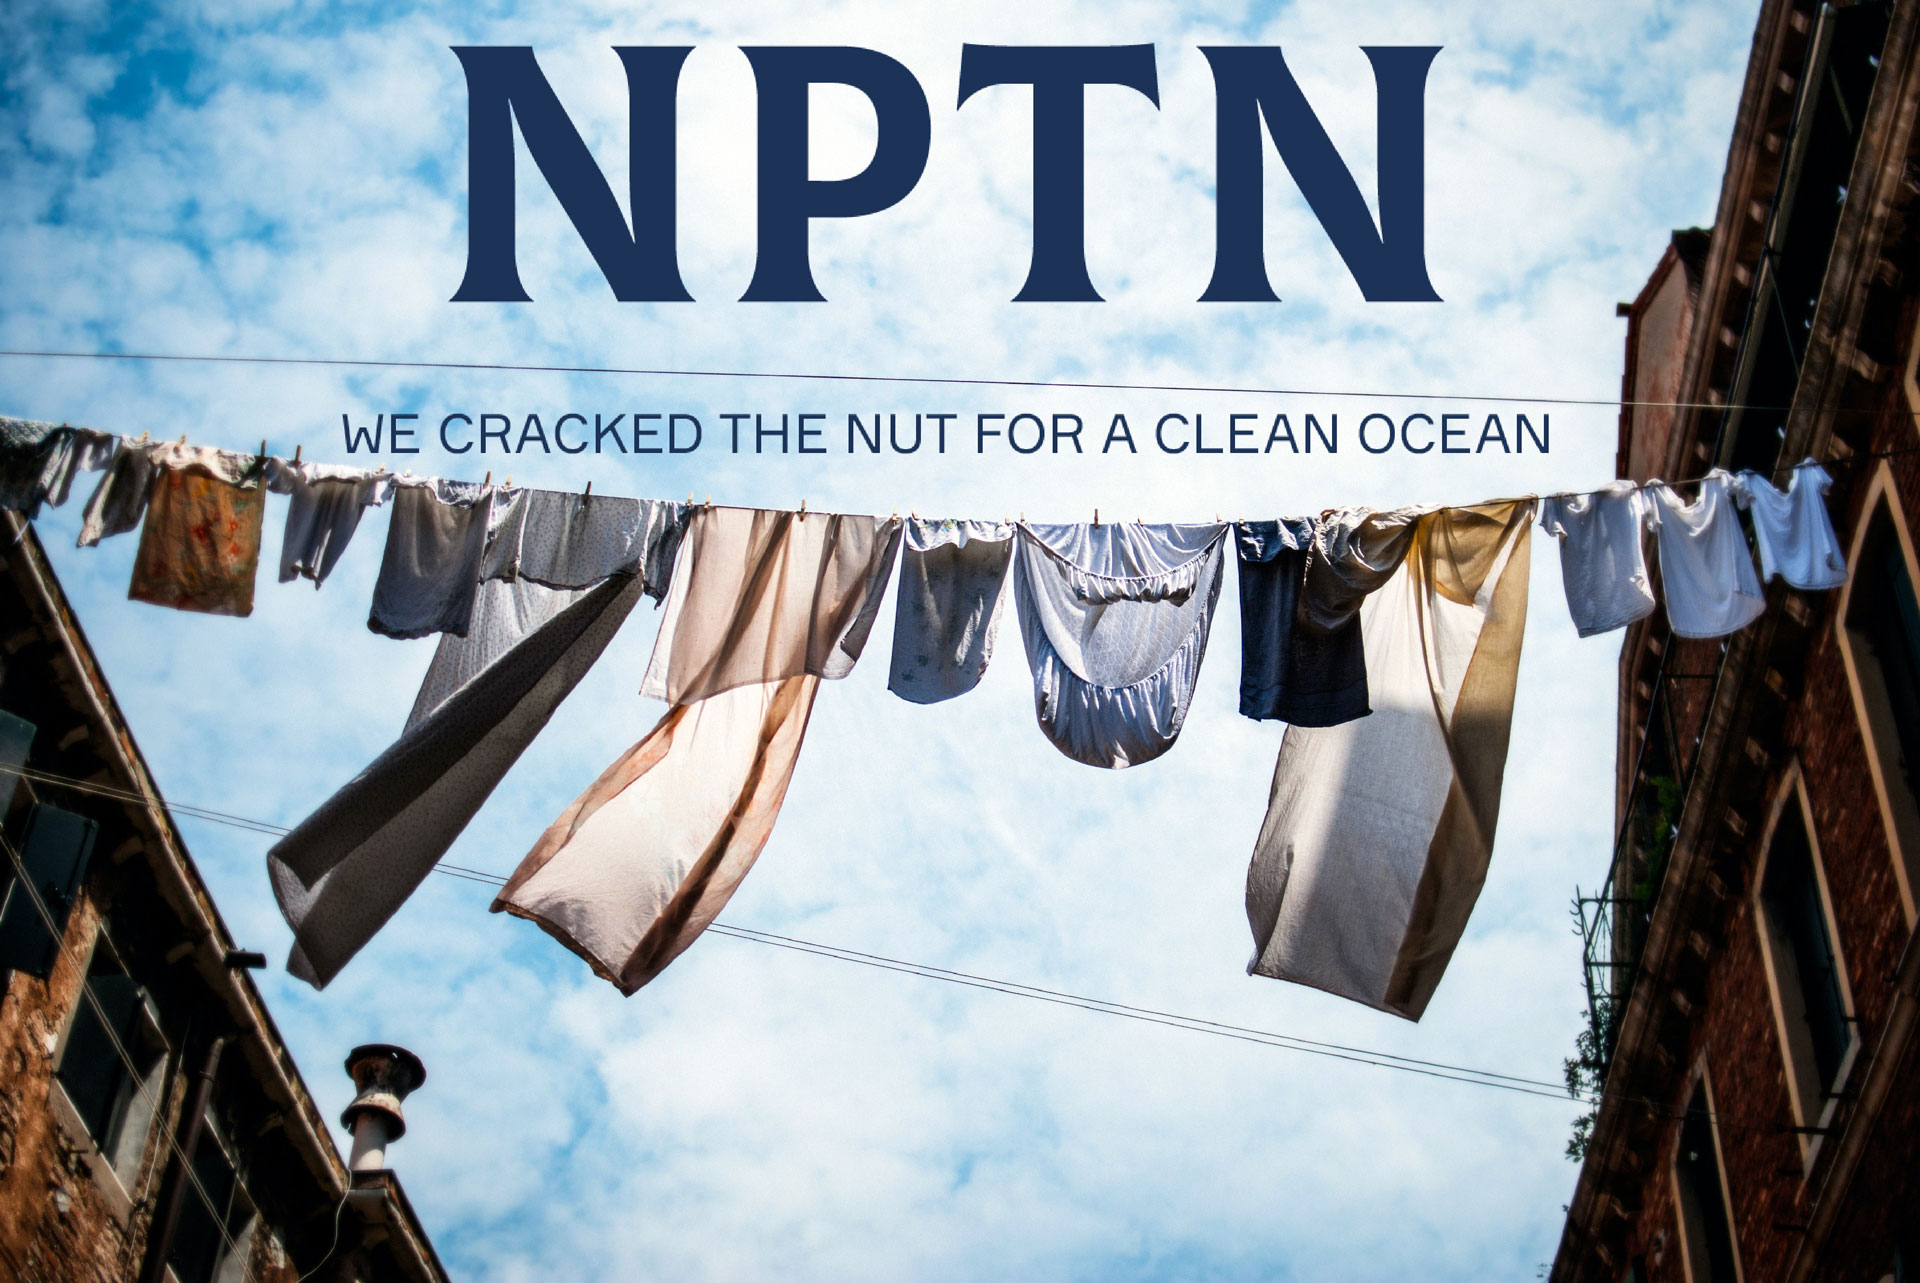 NPTN - We cracked the nut for a clean ocean